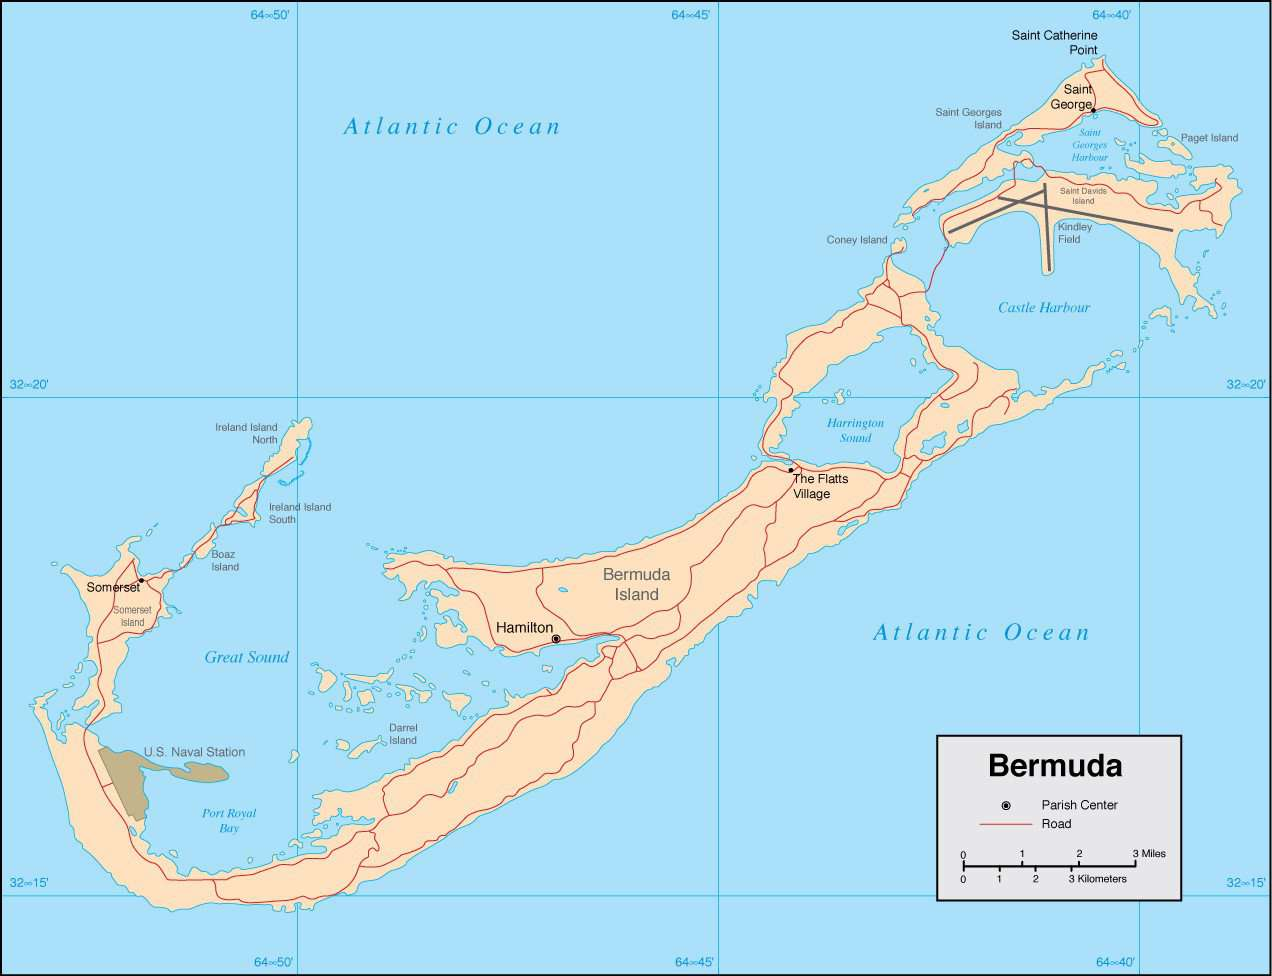 Bermuda Page Size Digital Map on south america map, italy map, sudan map, cook islands map, atlantic ocean map, greenland map, ethiopia map, egypt map, angola map, rwanda map, western hemisphere map, algeria map, mozambique map, malawi map, lesotho map, niger map, namibia map, turks and caicos map, morocco map, senegal map, jamaica map, eritrea map, puerto rico map, caribbean map, libya map, madagascar map, brunei map, gibraltar map, mediterranean map, monaco map, ghana map, kenya map, virgin islands map, tunisia map, st. martin map, west indies map, central america map, north america map, zimbabwe map, navassa island map,